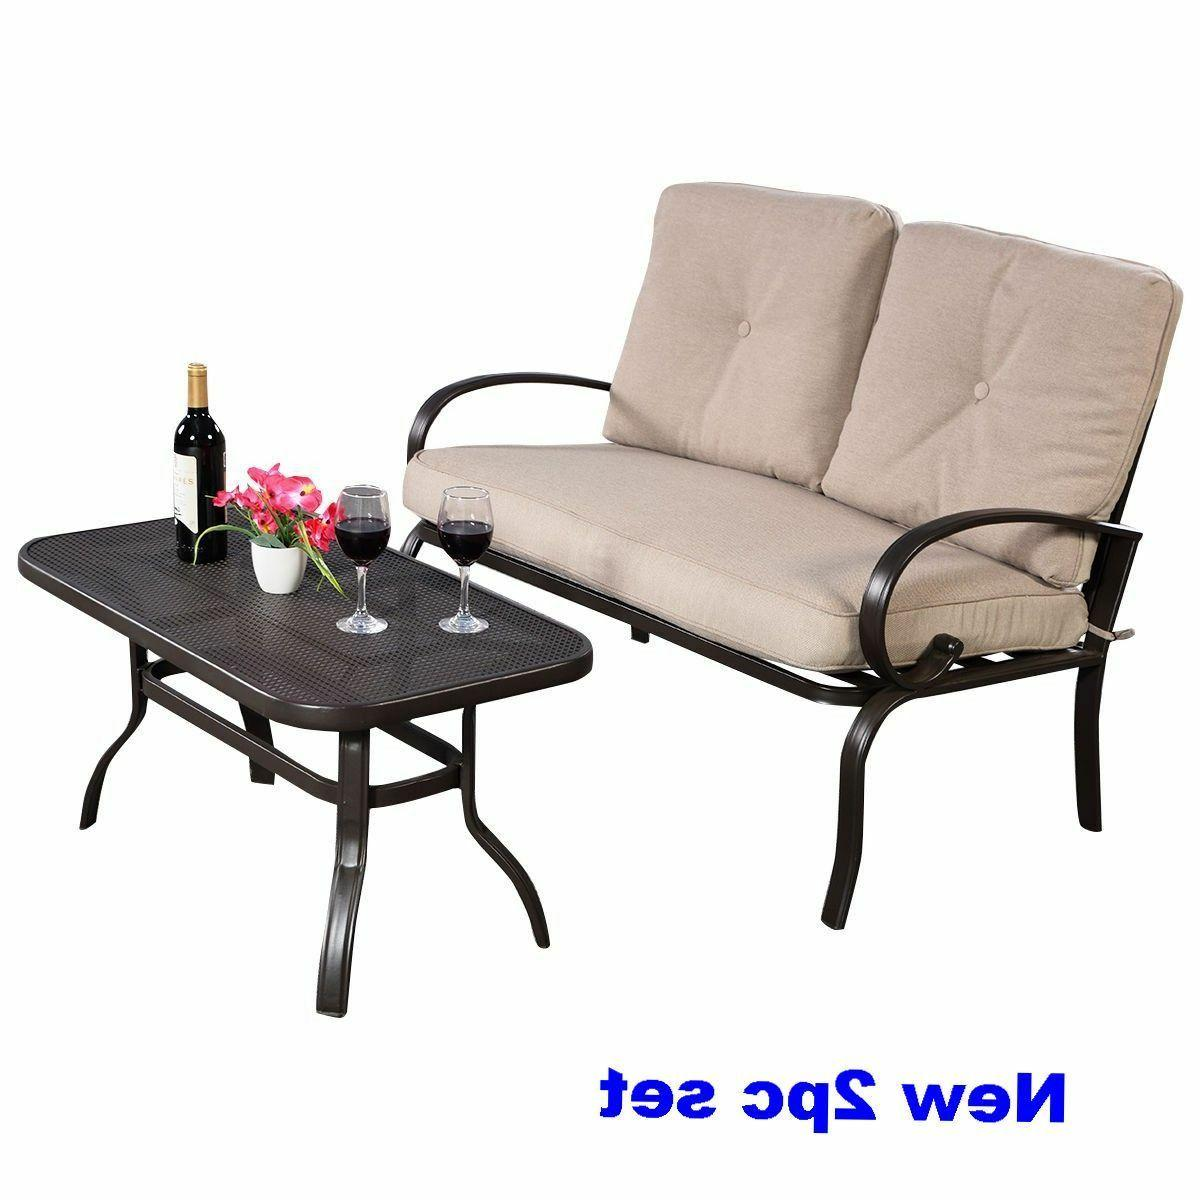 Outdoor Patio Sofa Bistro Steel Seat Coffee Table Loveseat C